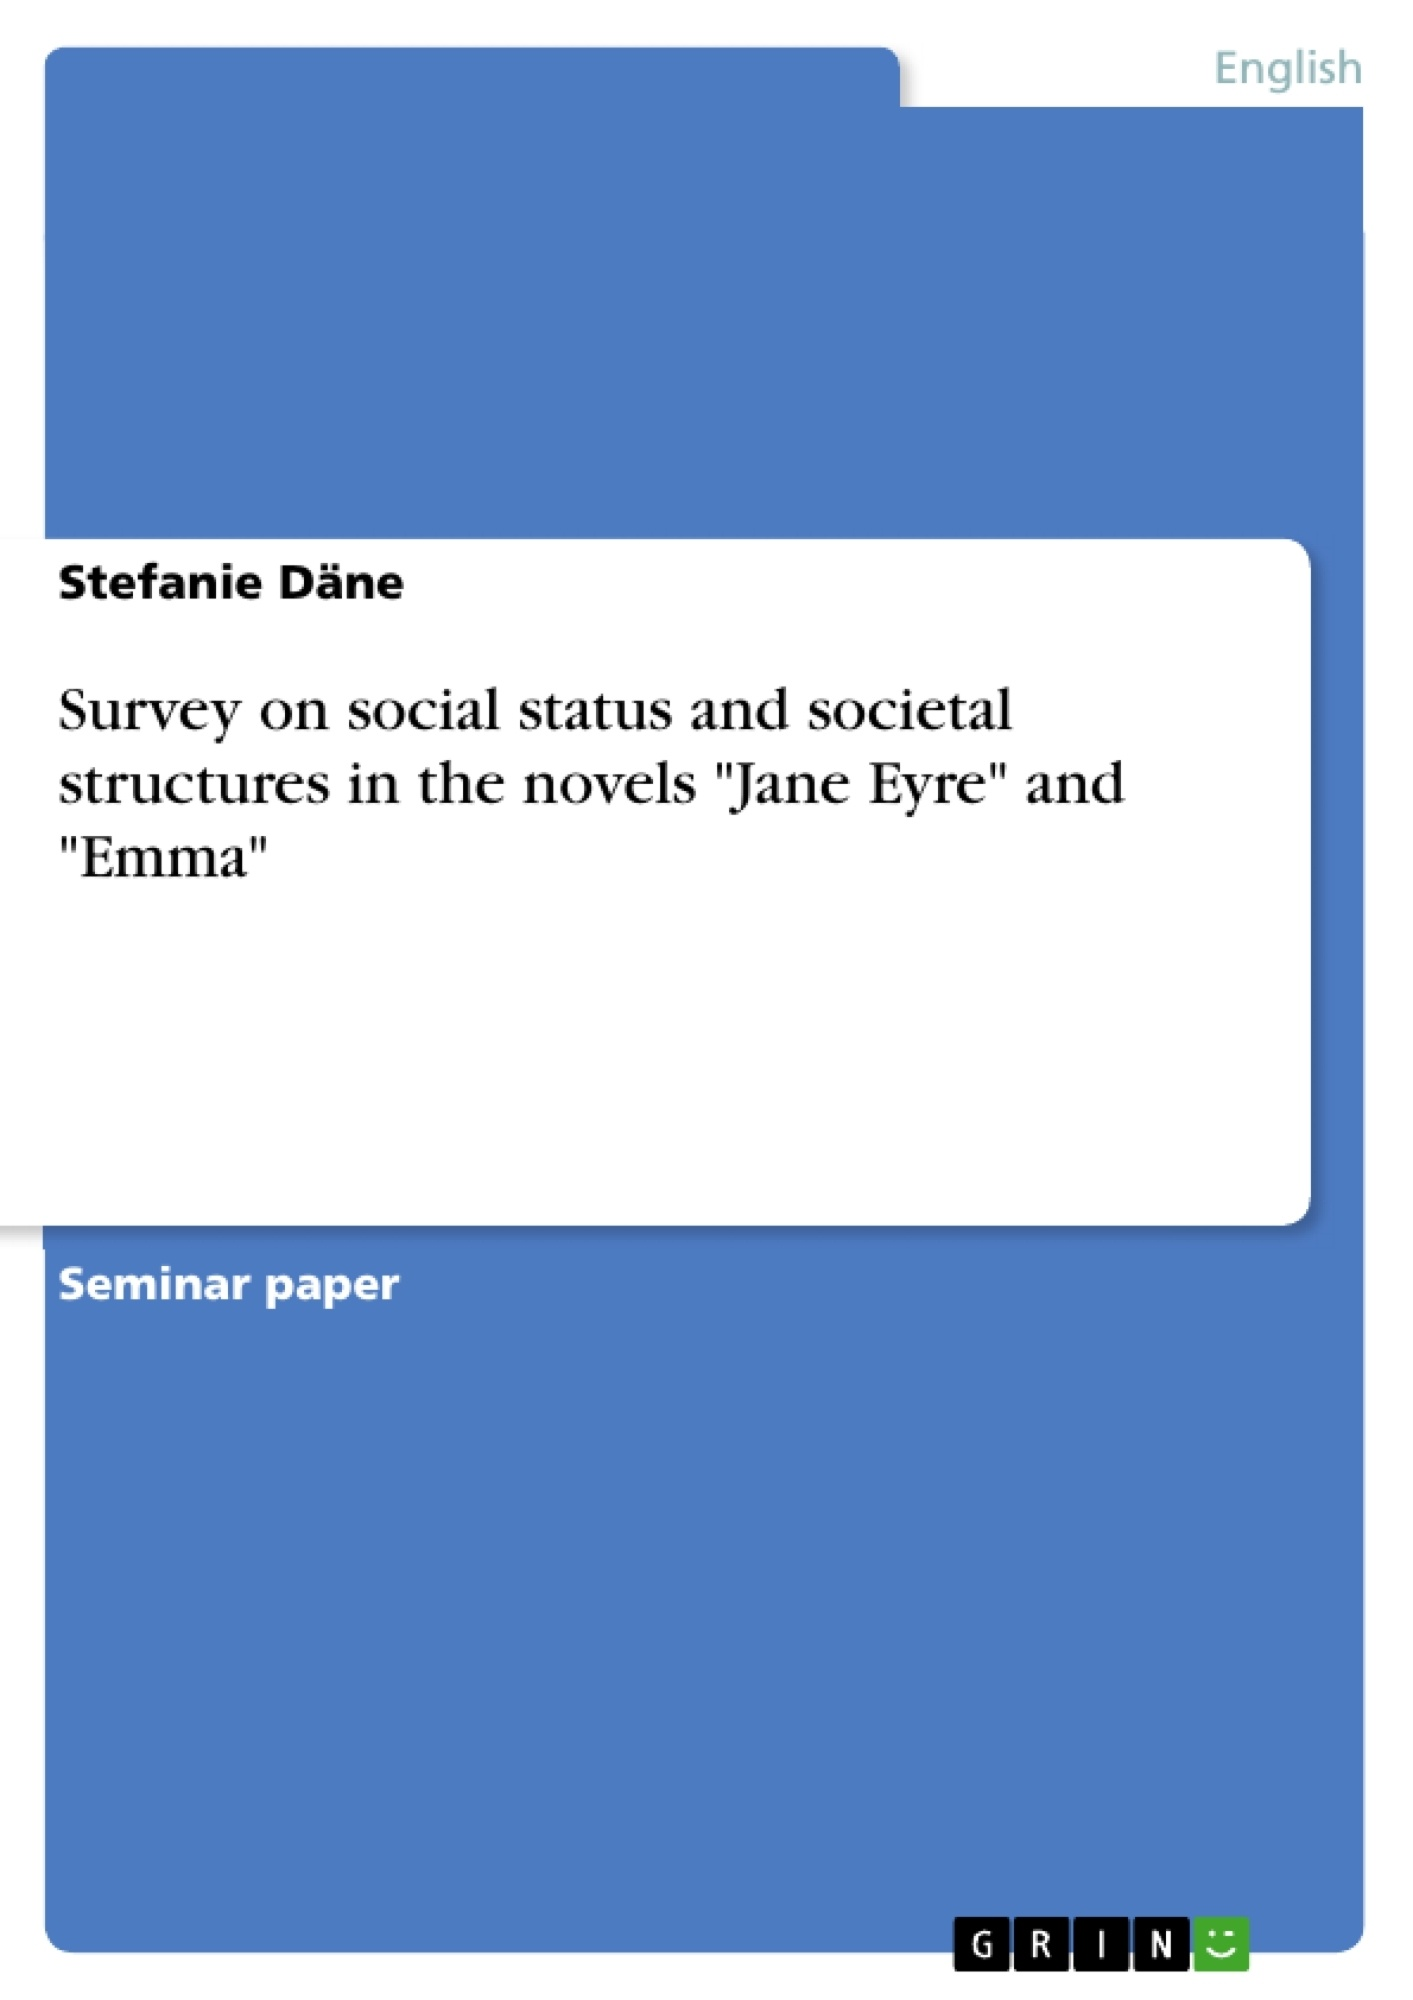 """Title: Survey on social status and societal structures in the novels """"Jane Eyre"""" and """"Emma"""""""